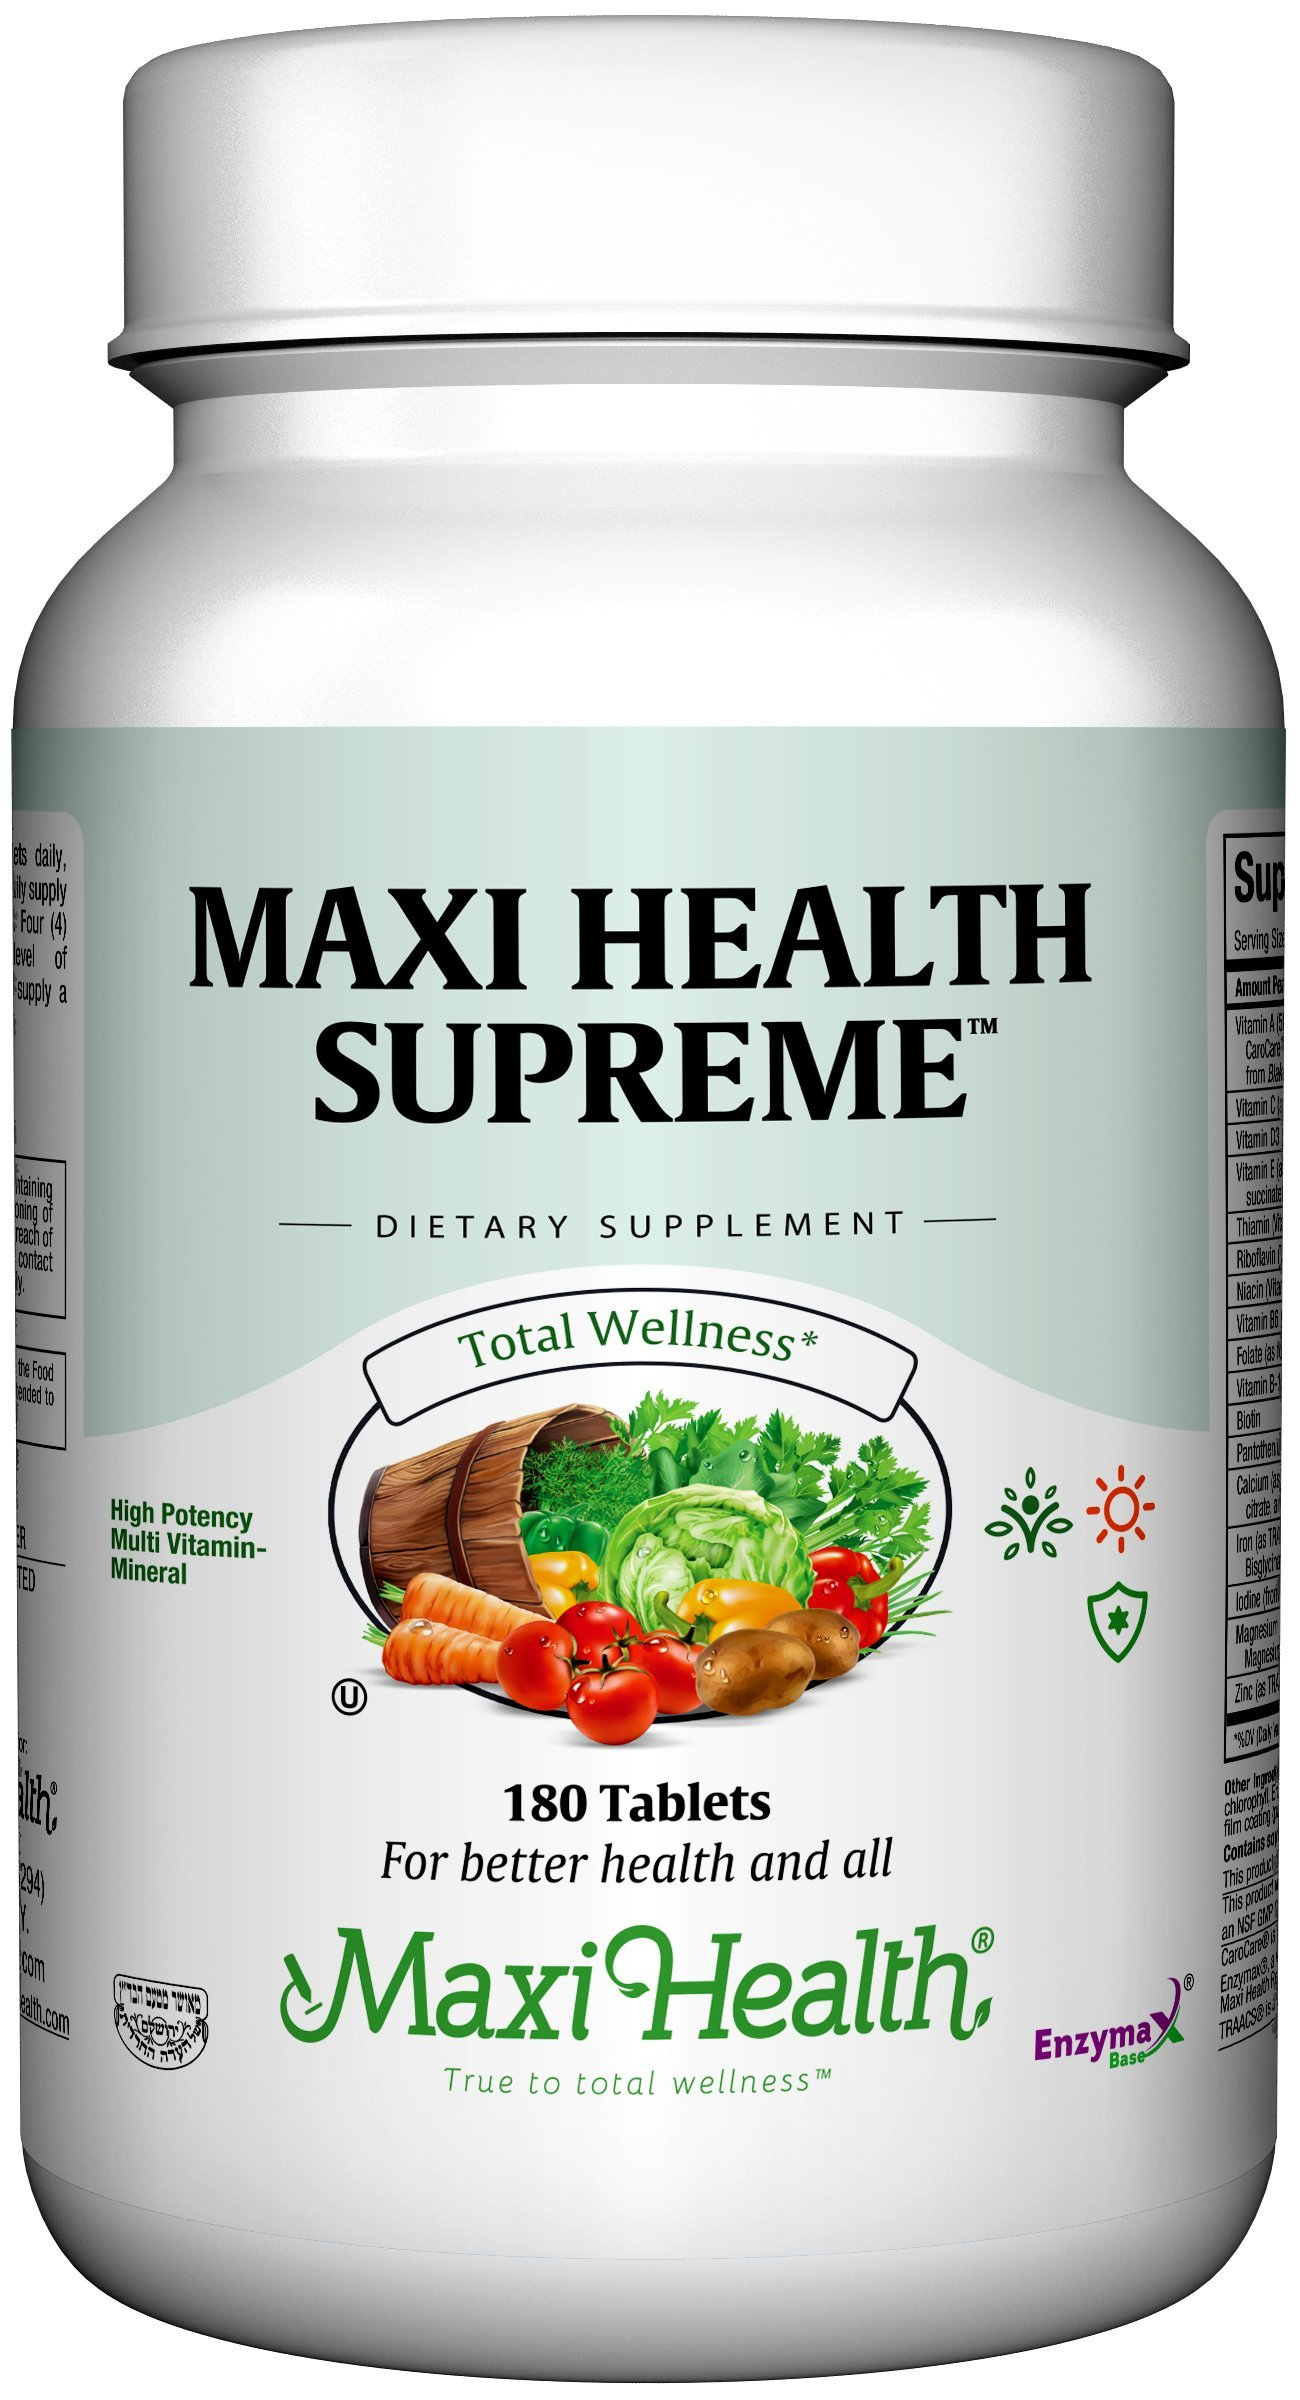 Maxi Health Supreme - High Potency Multivitamin & Mineral  Supplement - 180 Tablets - Kosher